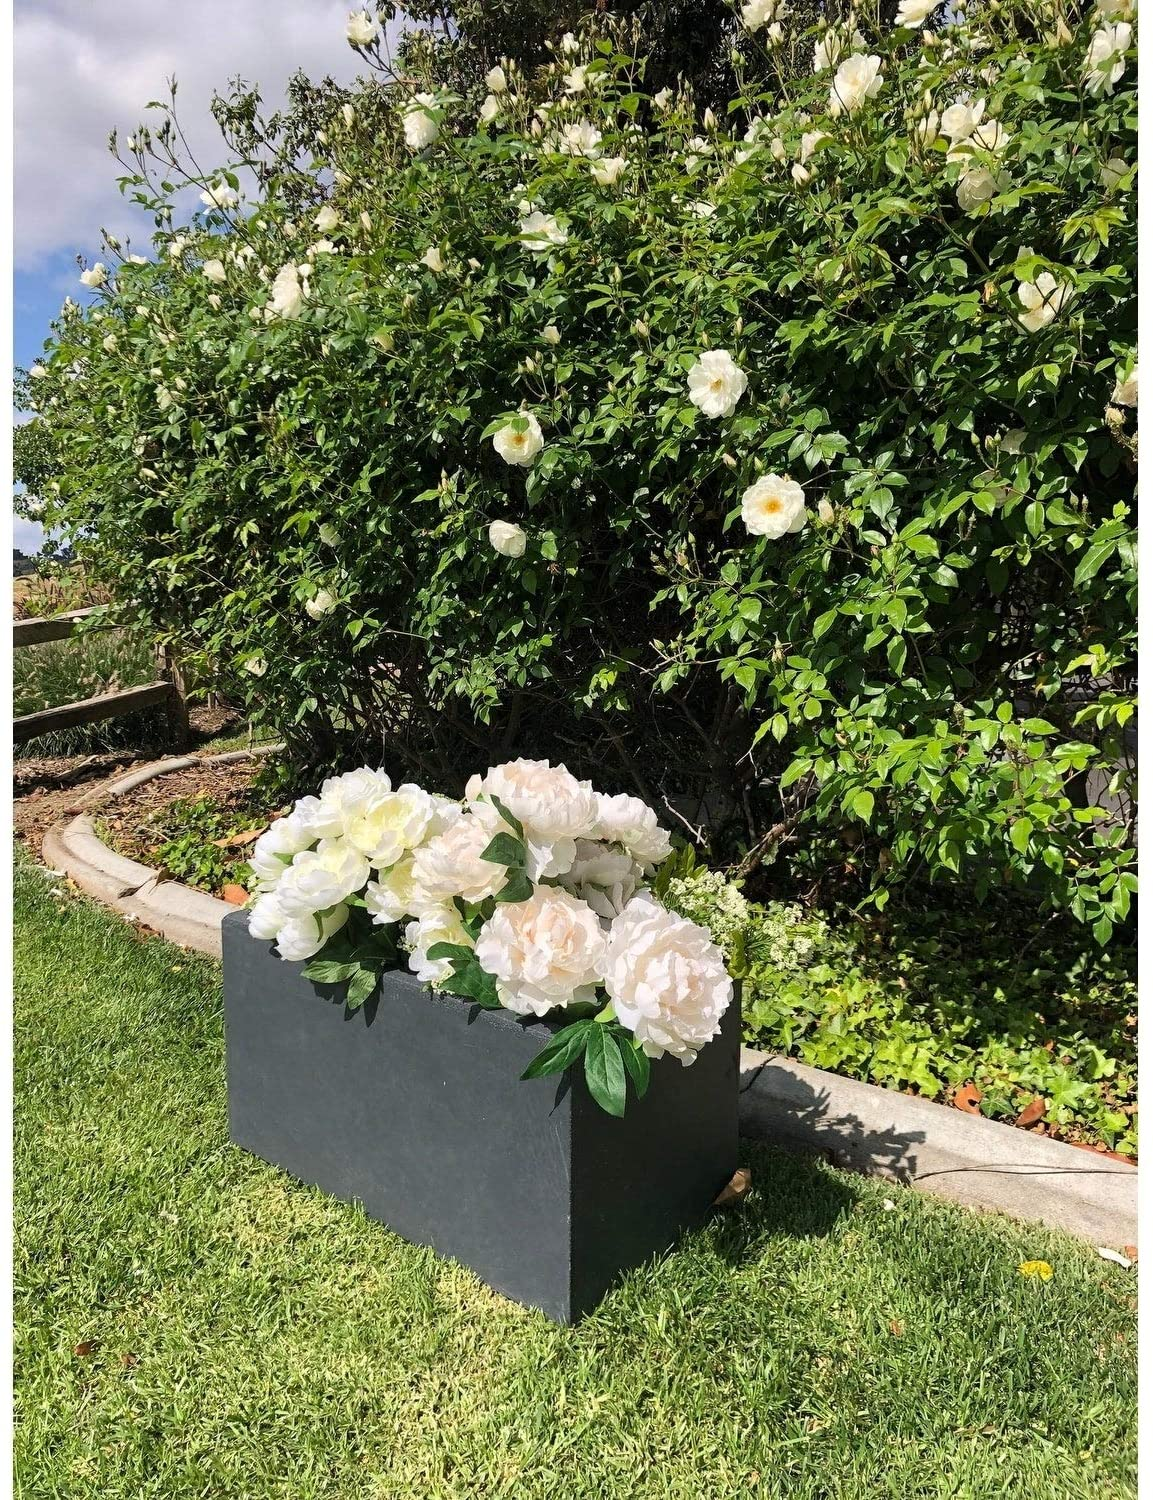 Lightweight Concrete Modern Long Granite Color Low Planter Small 23 2'x11 8'x12' Grey Rectangular